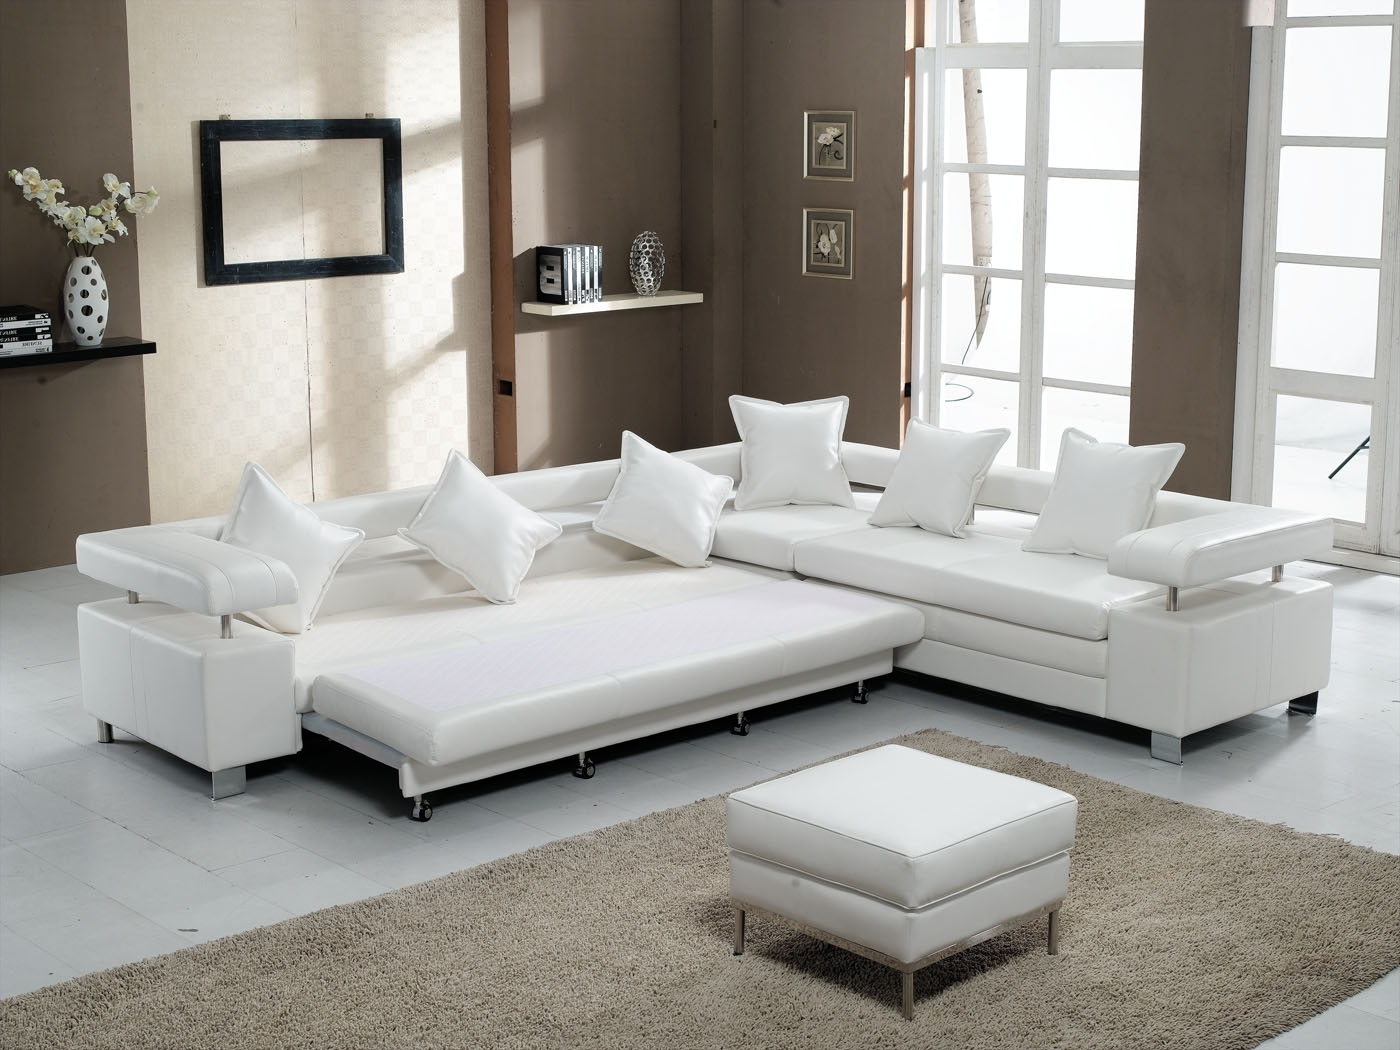 Widely Used 3 Piece White Leather Sectional Sofa With Stainless Steel Legs And With 3 Piece Sectional Sleeper Sofas (View 20 of 20)